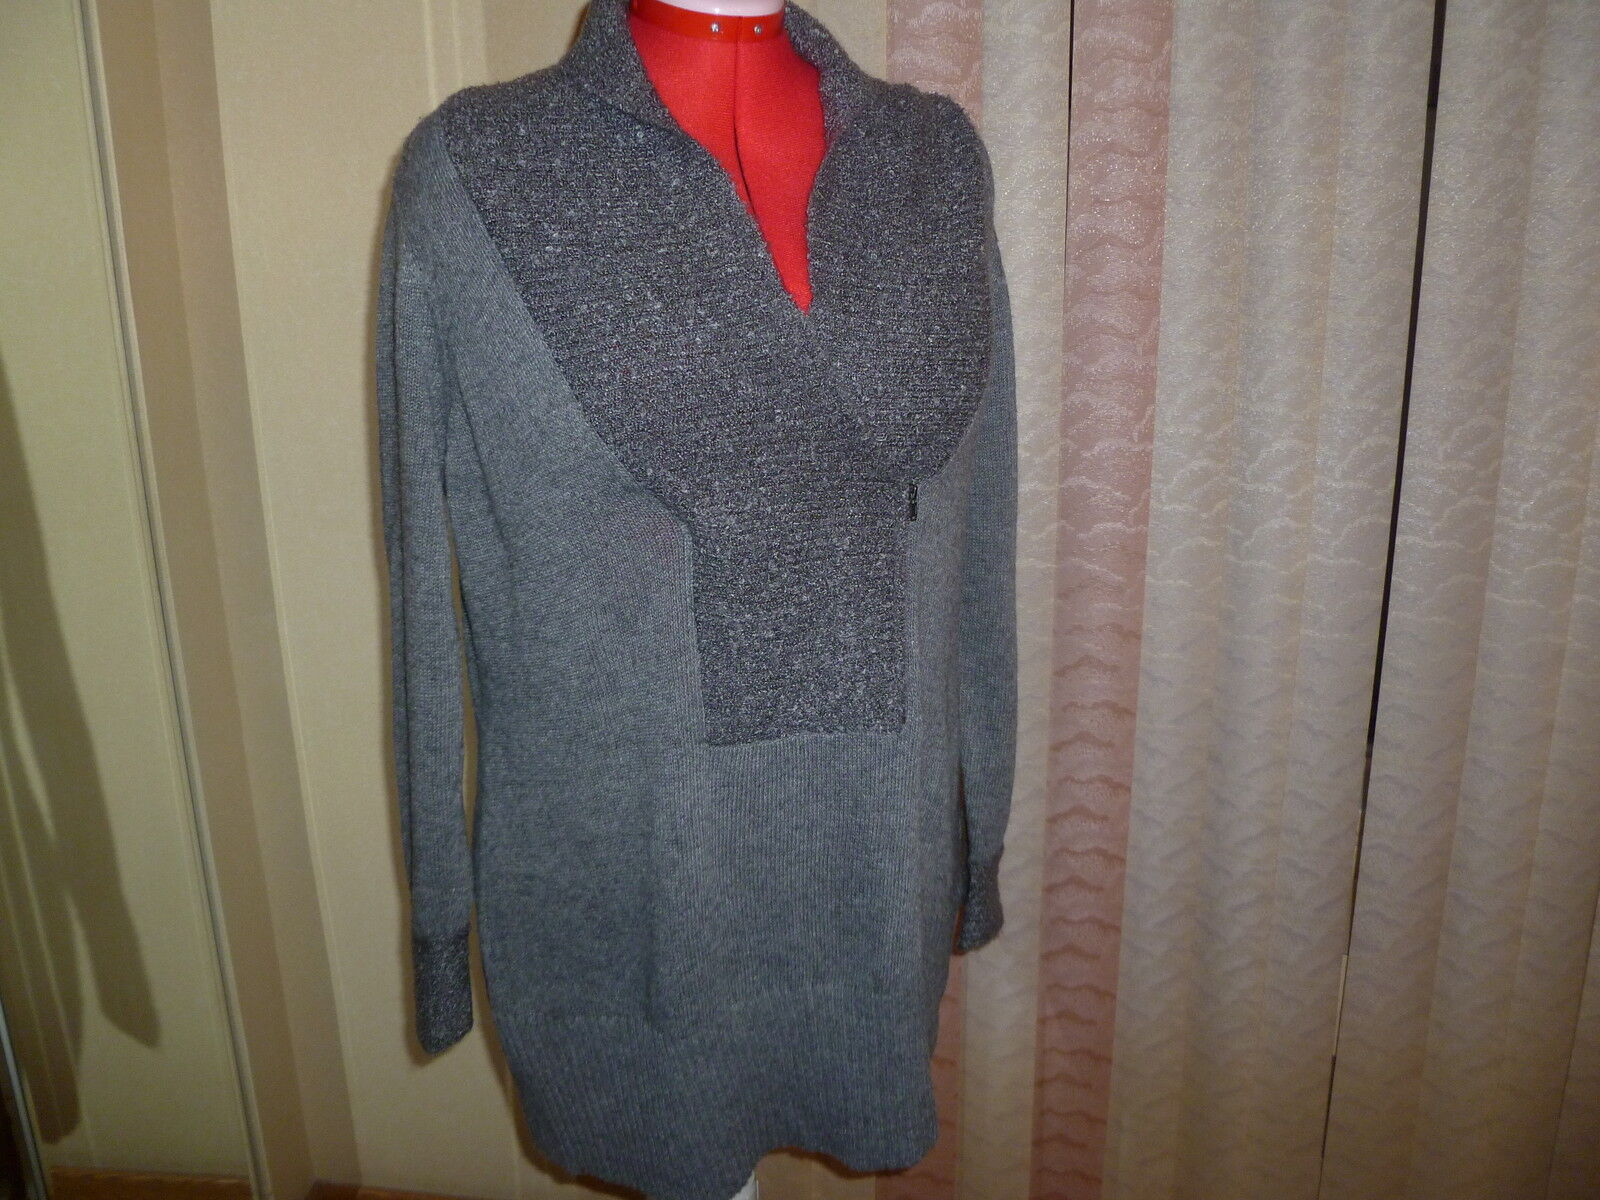 NWOT Olivia Sky (Nordstrom) sweater in heather grey long sleeves shawl collar 2X